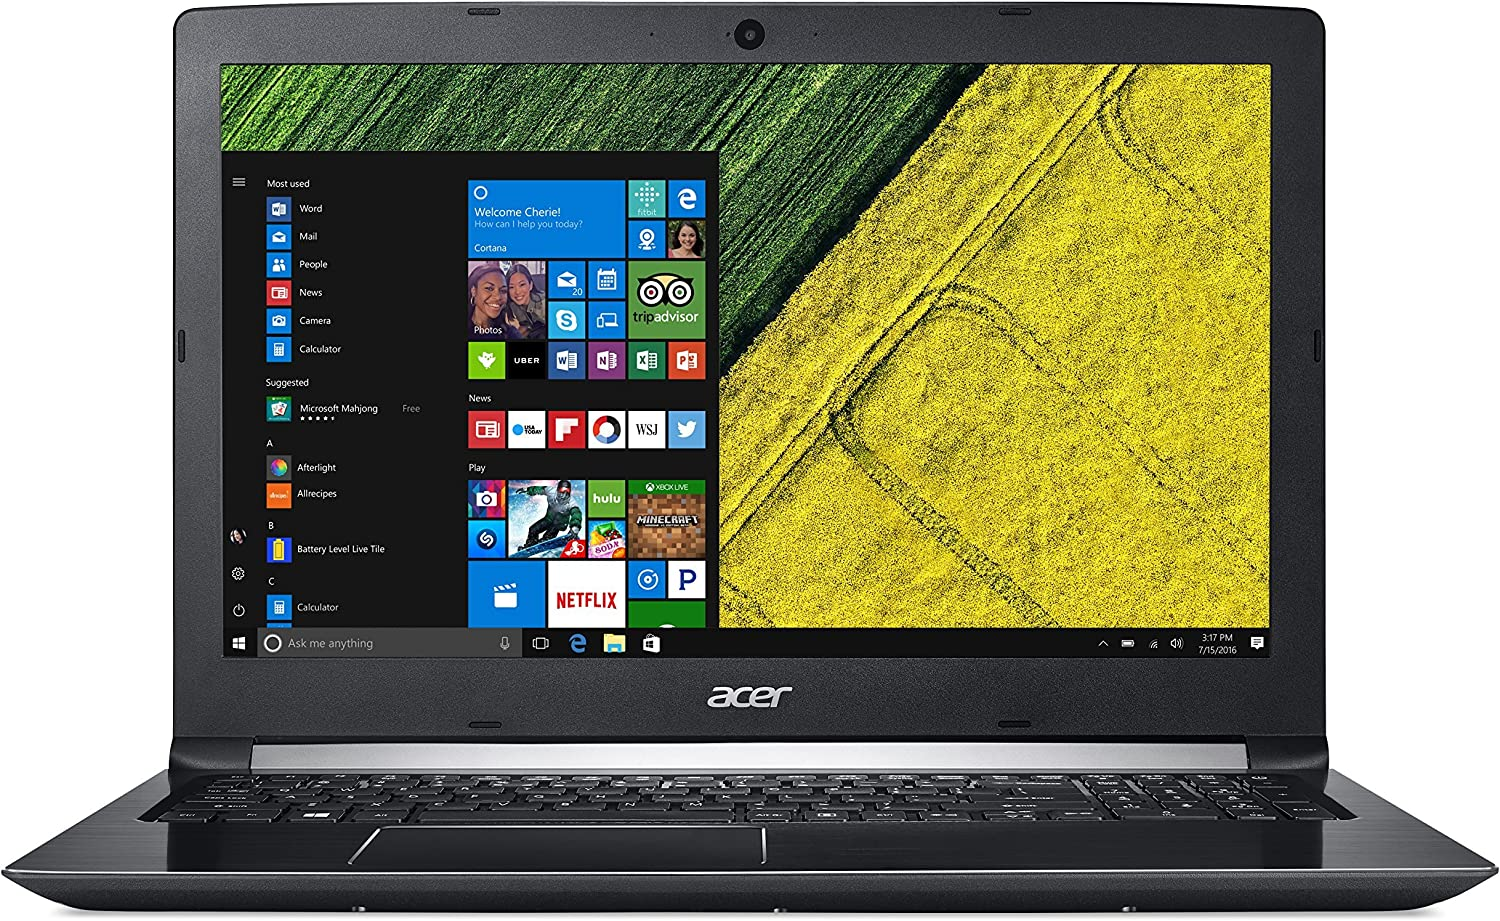 Acer Aspire 5, 15.6in Full HD, 8th Gen Intel Core i5-8250U, GeForce MX150, 8GB DDR4 Memory, 256GB SSD, A515-51G-515J (Renewed)